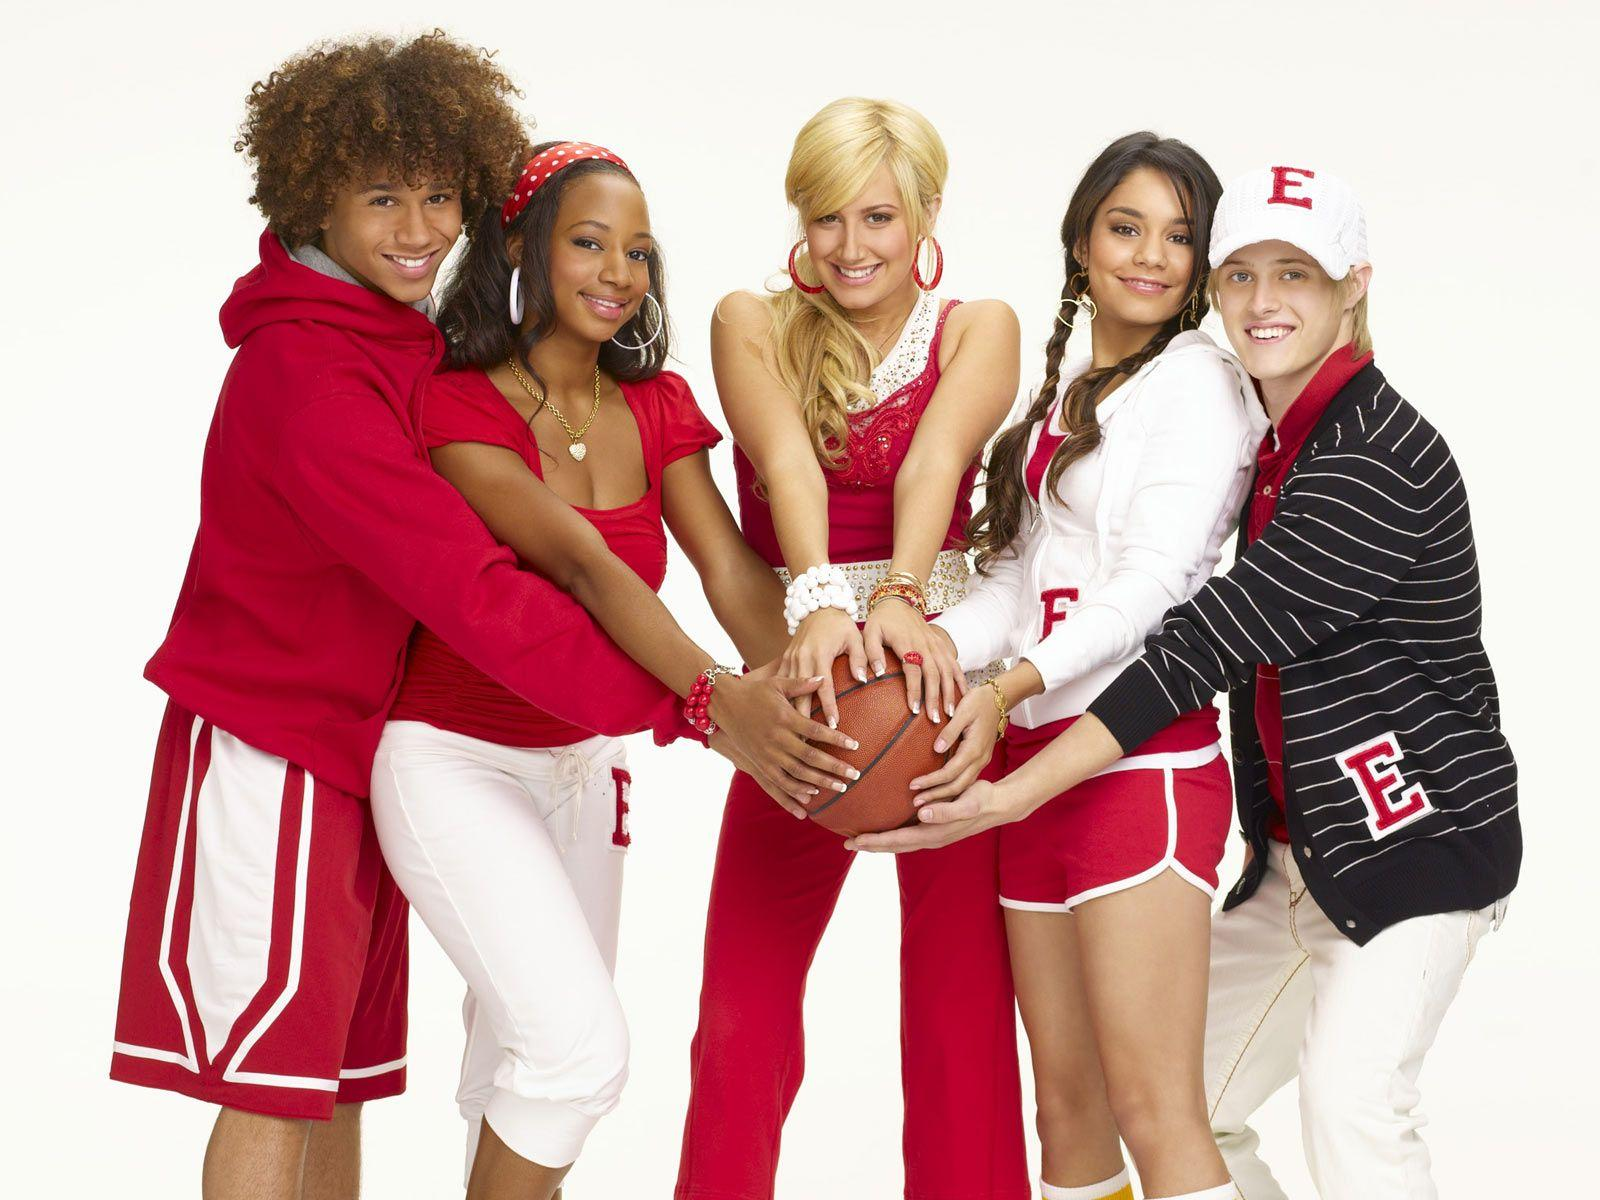 Nude picture episode taught me a lot, says high school musical star vanessa hudgens